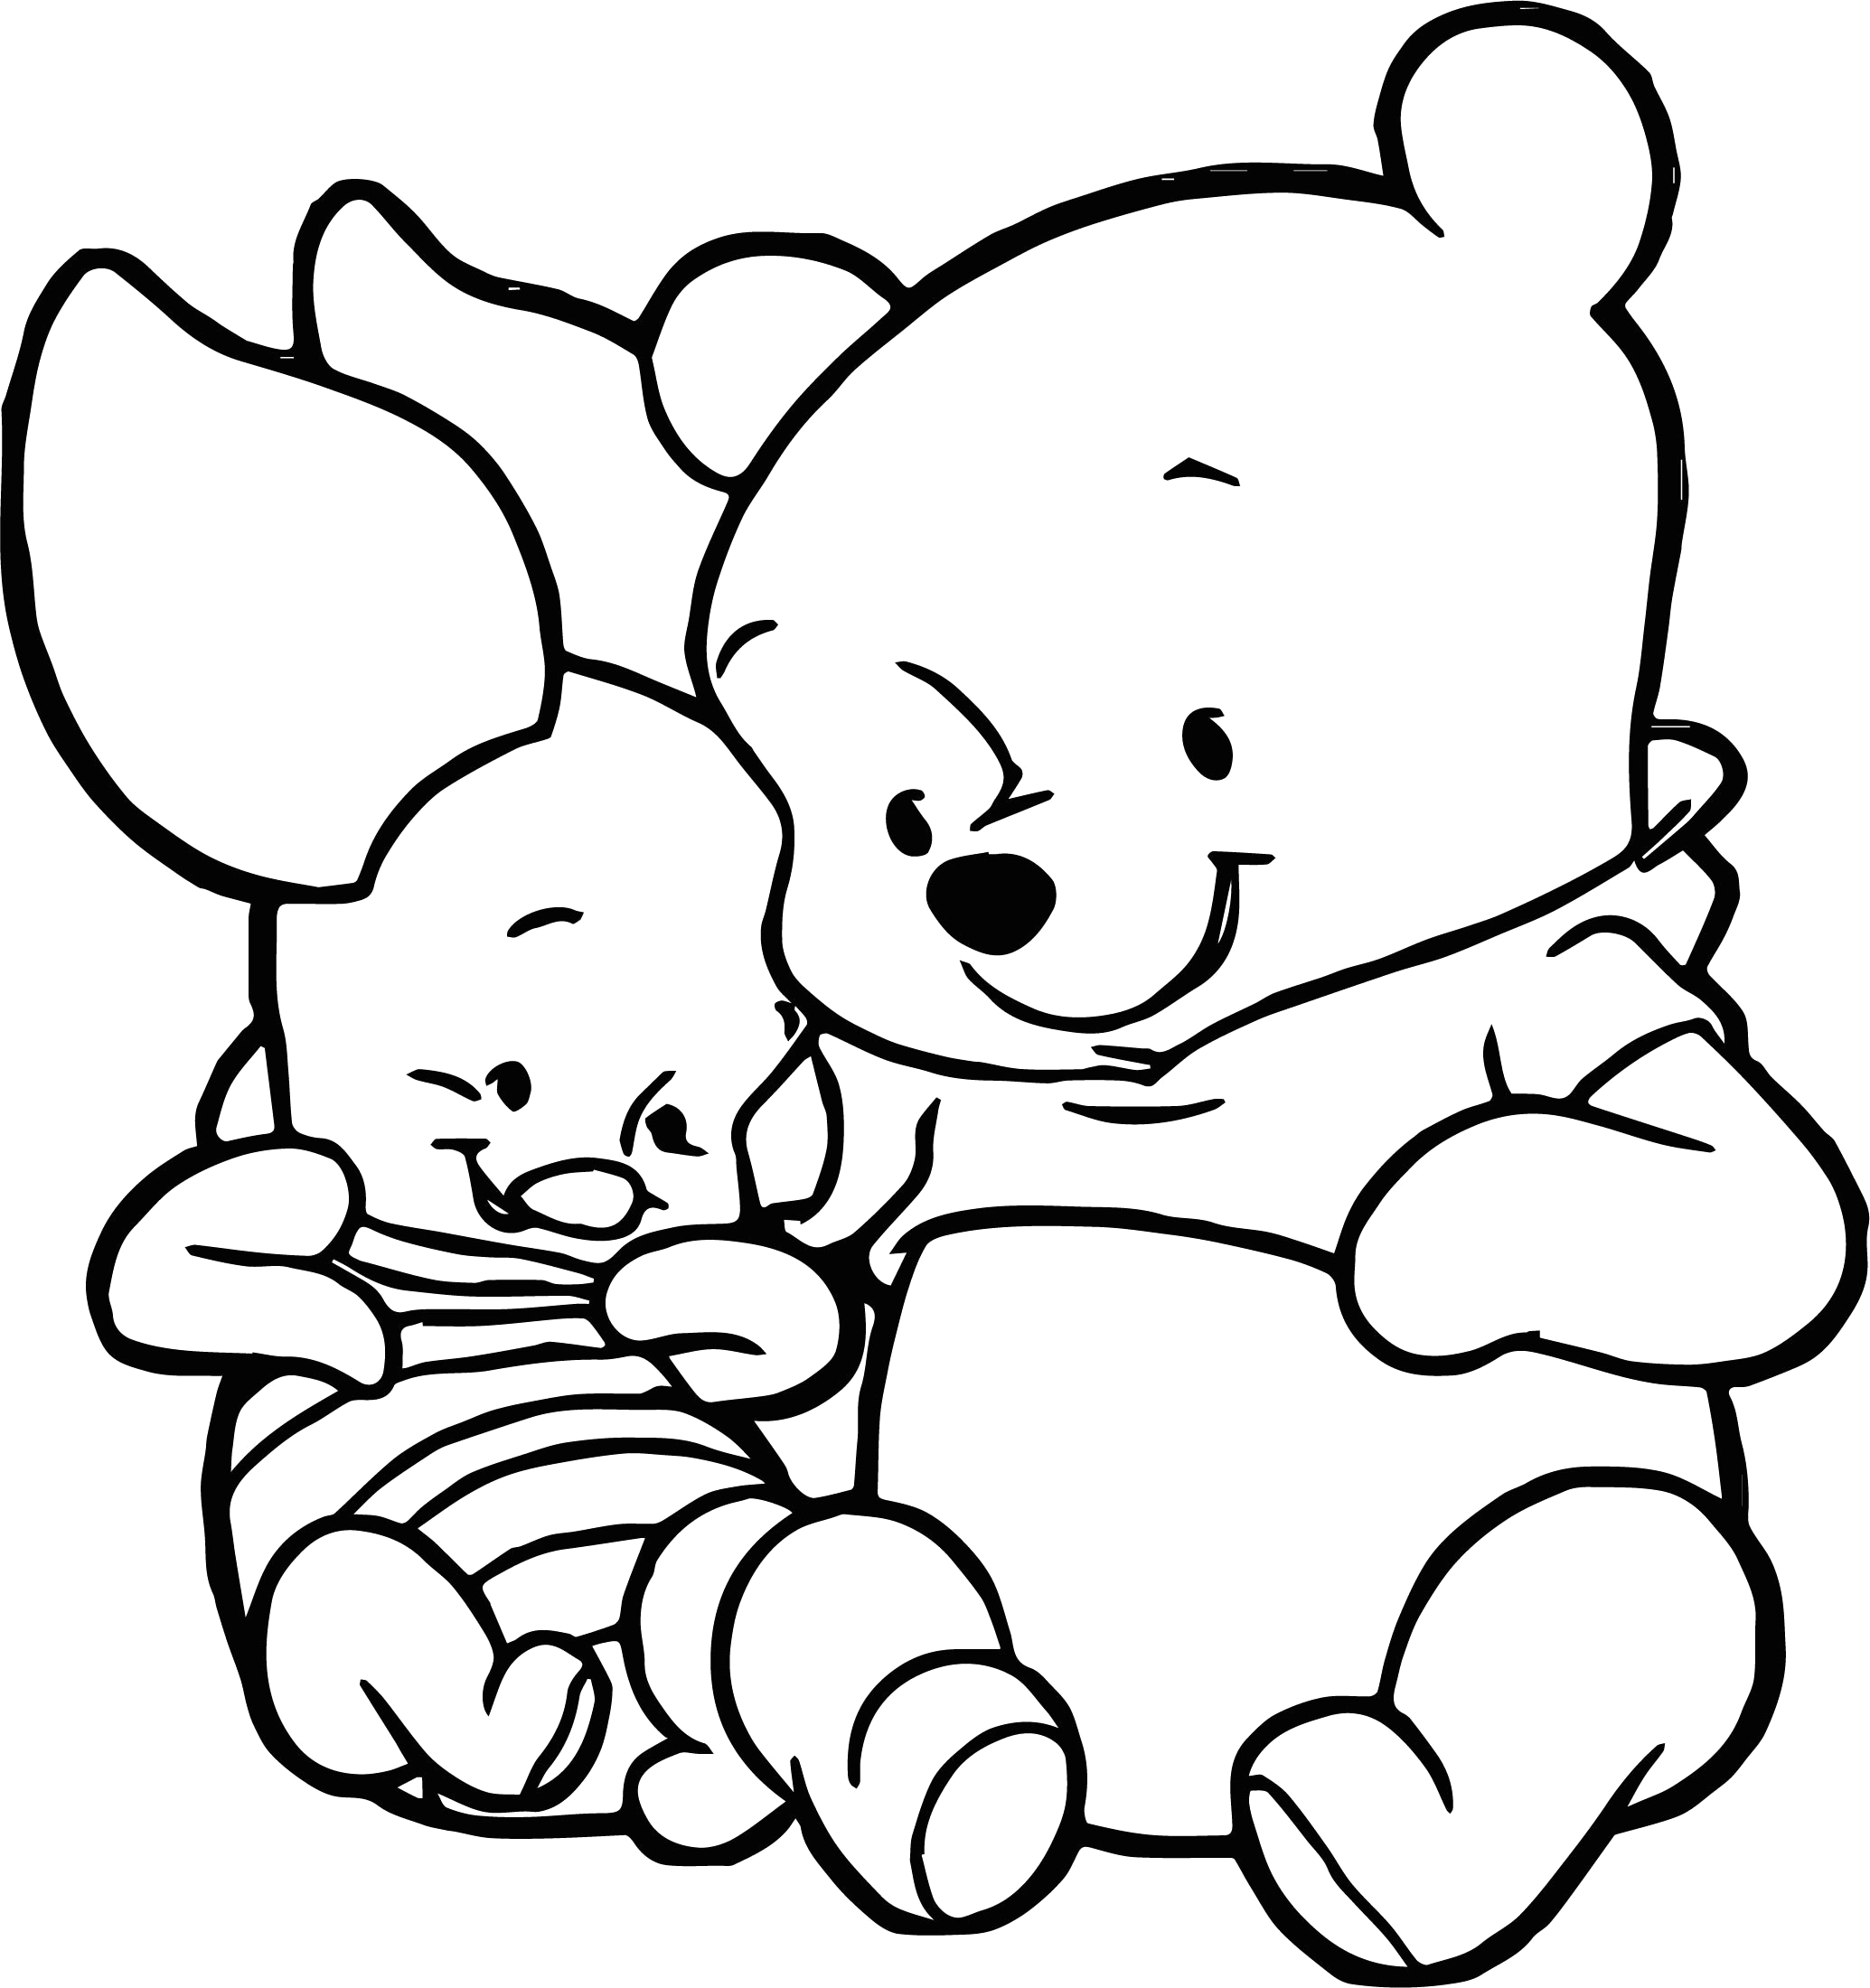 Baby Piglet From Winnie the Pooh Coloring Pages Cute Baby Piglet Winnie the Pooh Coloring Page